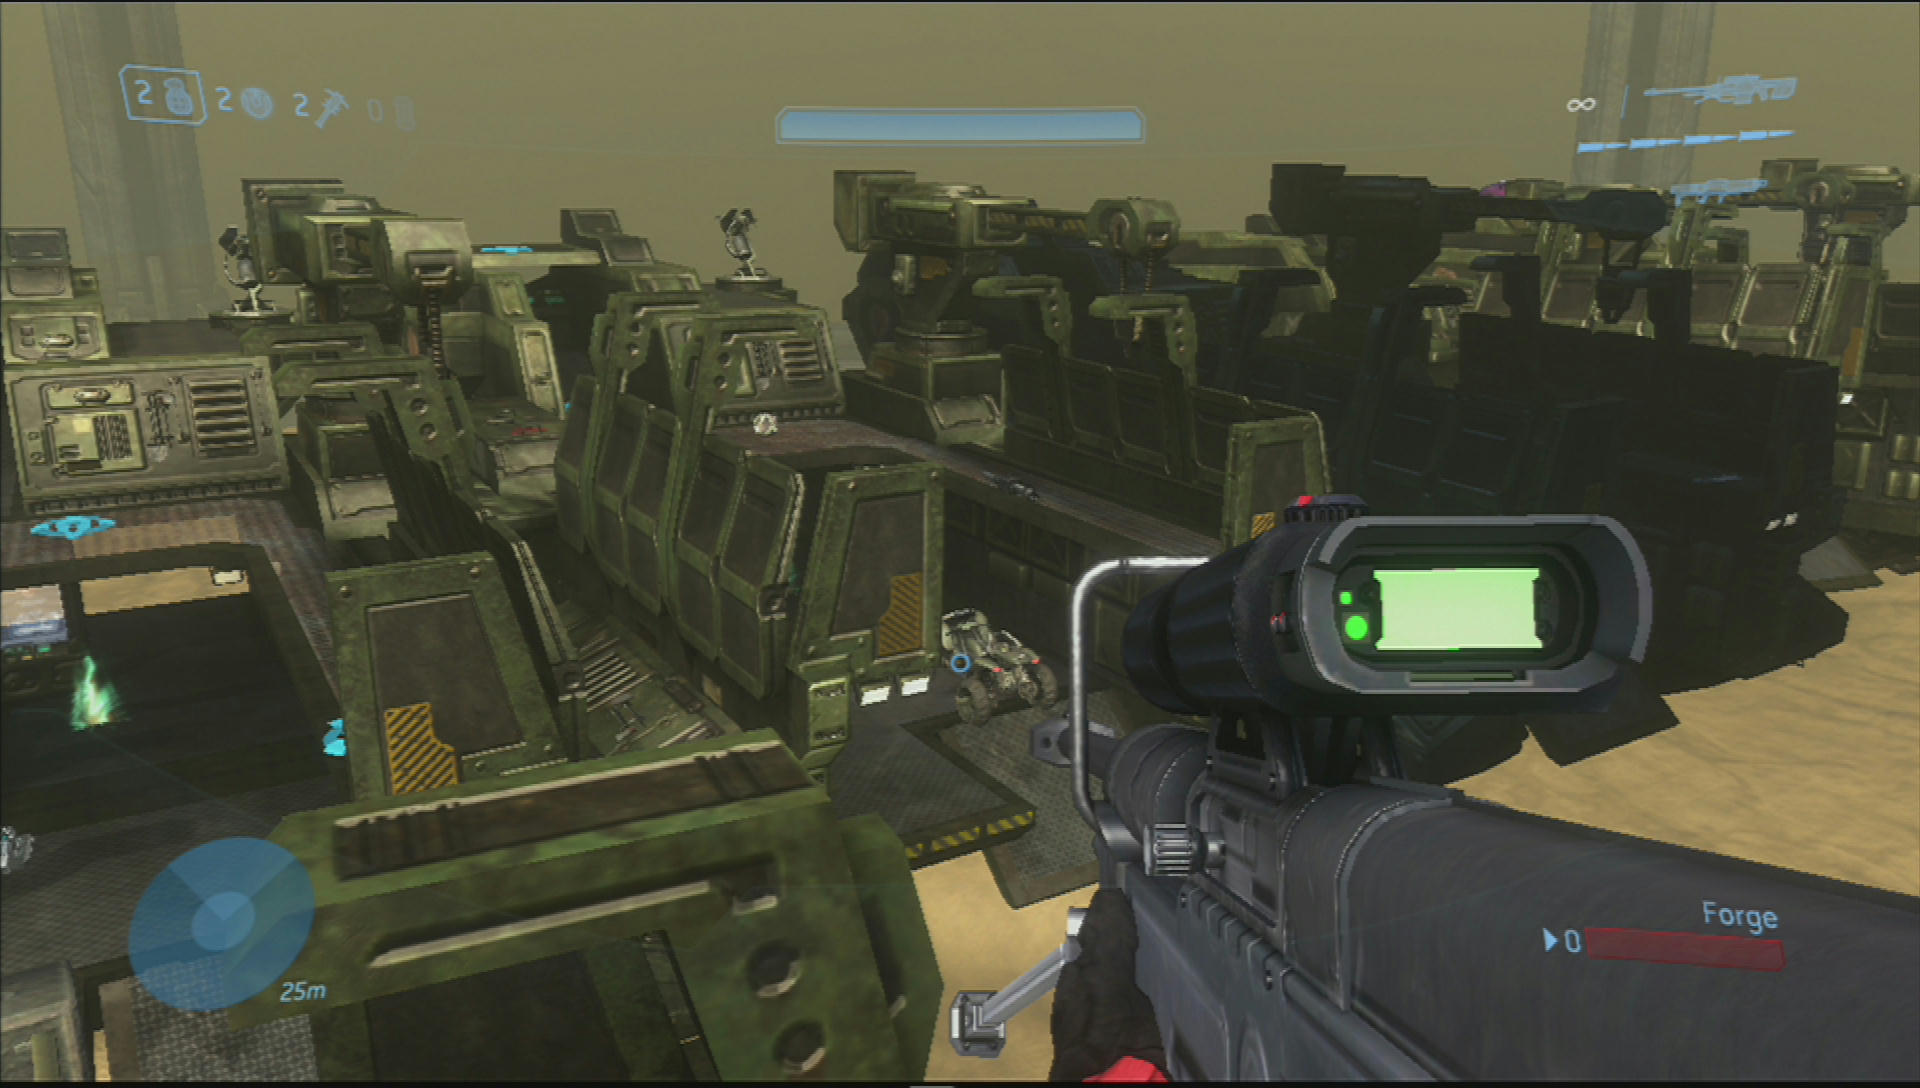 General] Old Custom Games w/Download Links - Halo 3 - Xbox Chaos